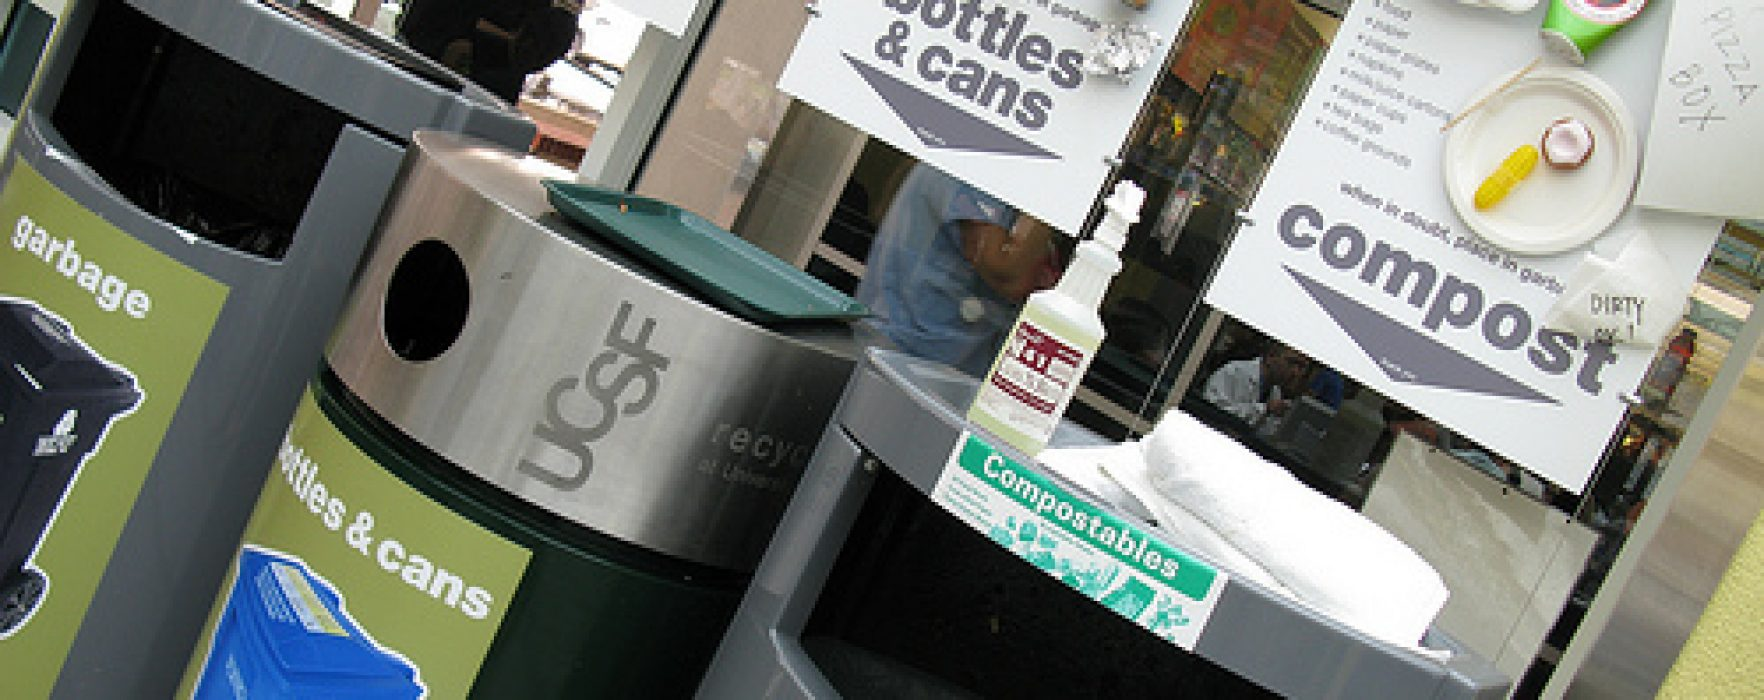 Millions of households are confused over what can and can't be recycled